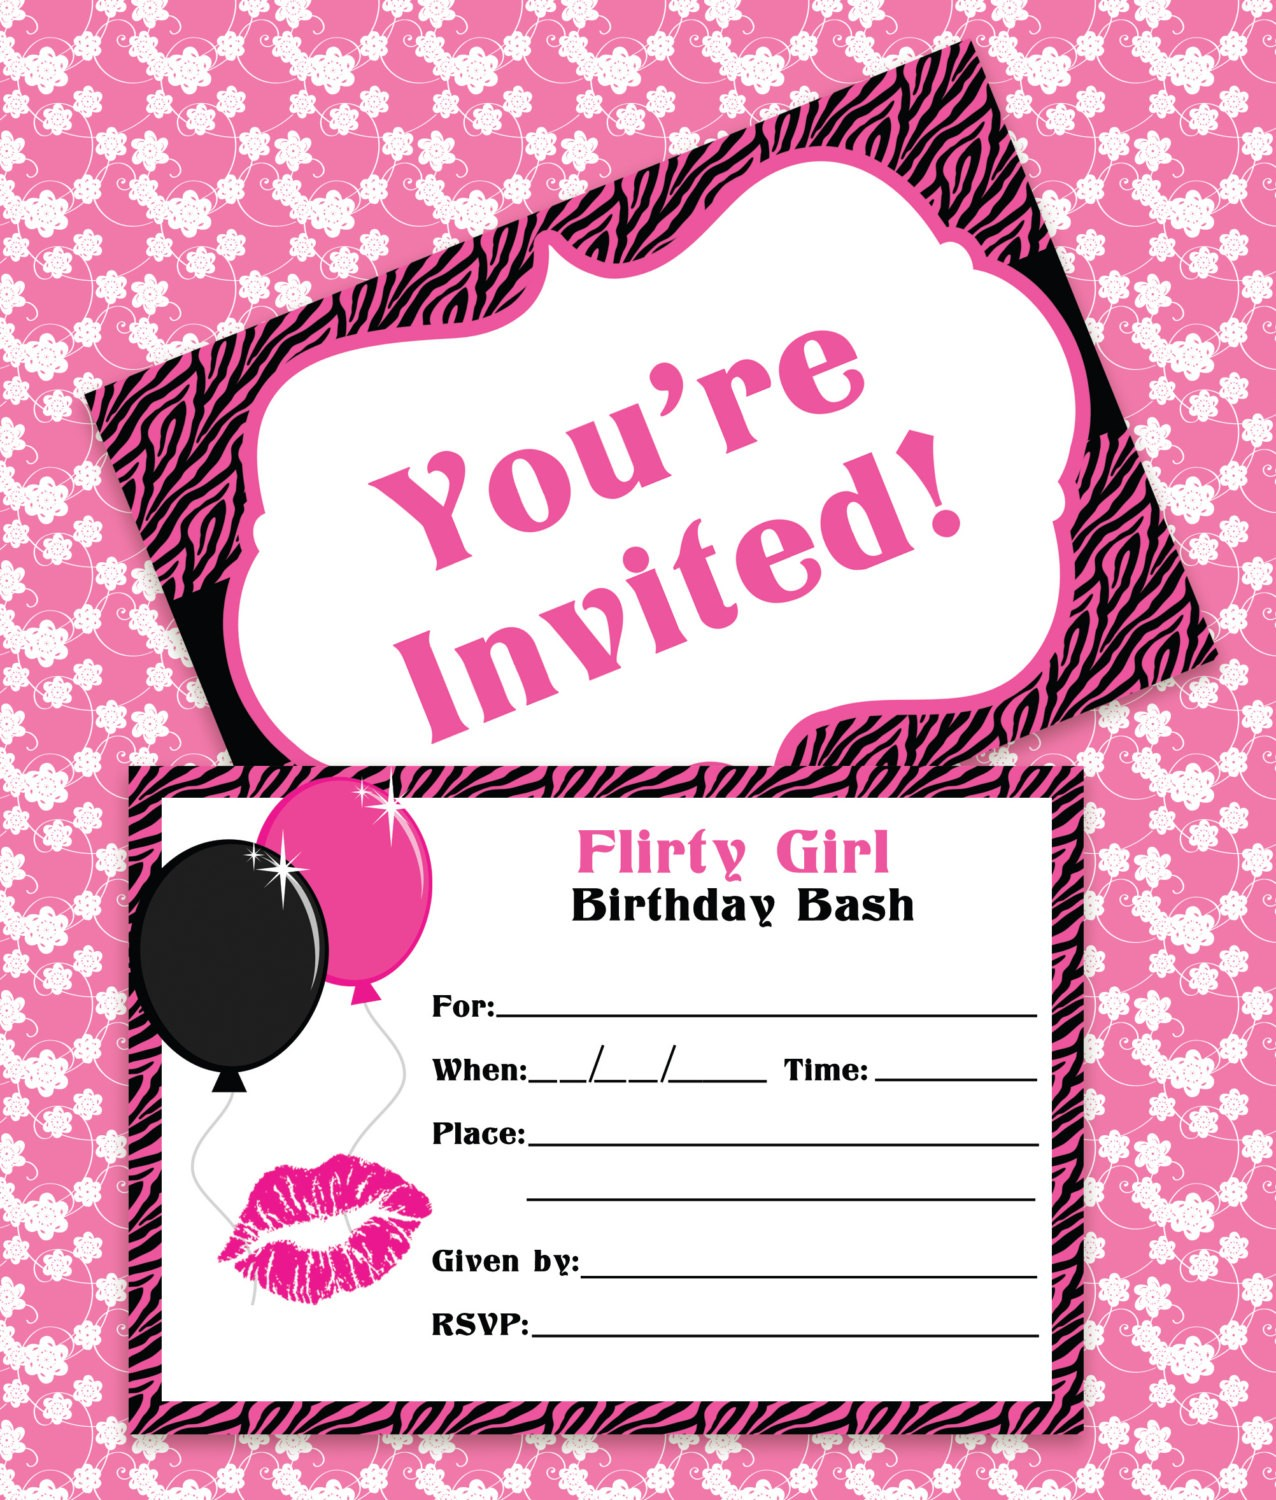 birthday invitation design online free ; birthday-invitations-online-free-and-your-charming-Birthday-Invitation-Cards-invitation-card-design-using-popular-ornaments-8